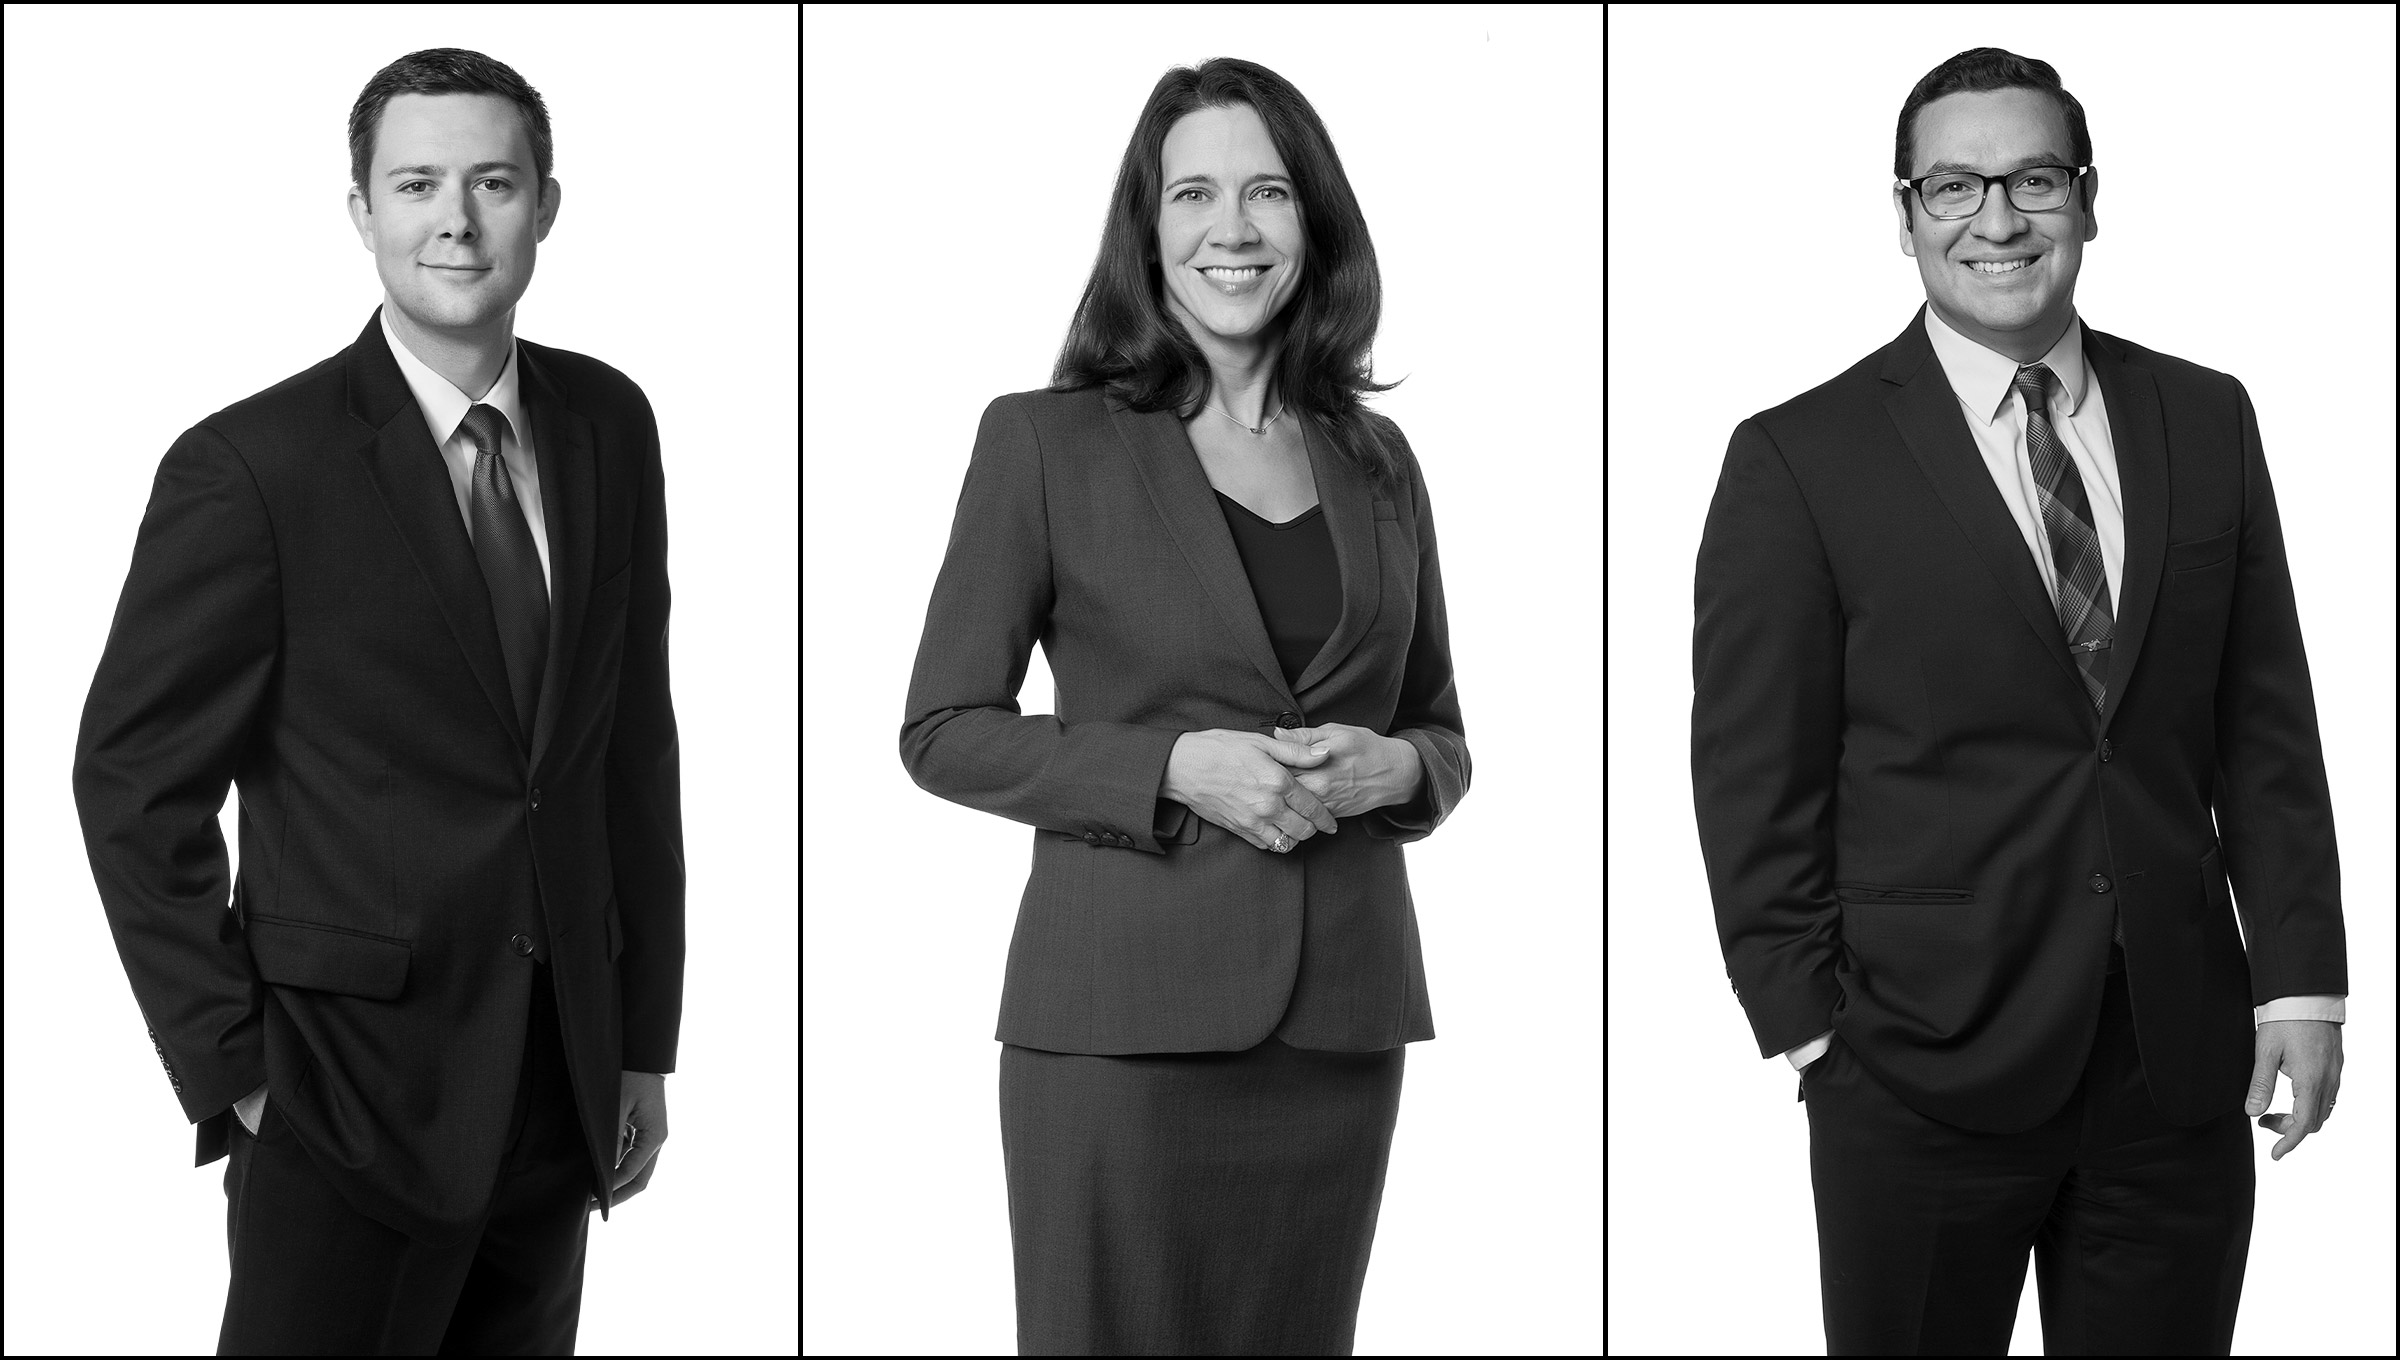 Three attorney portraits in a black and white triptych with white background